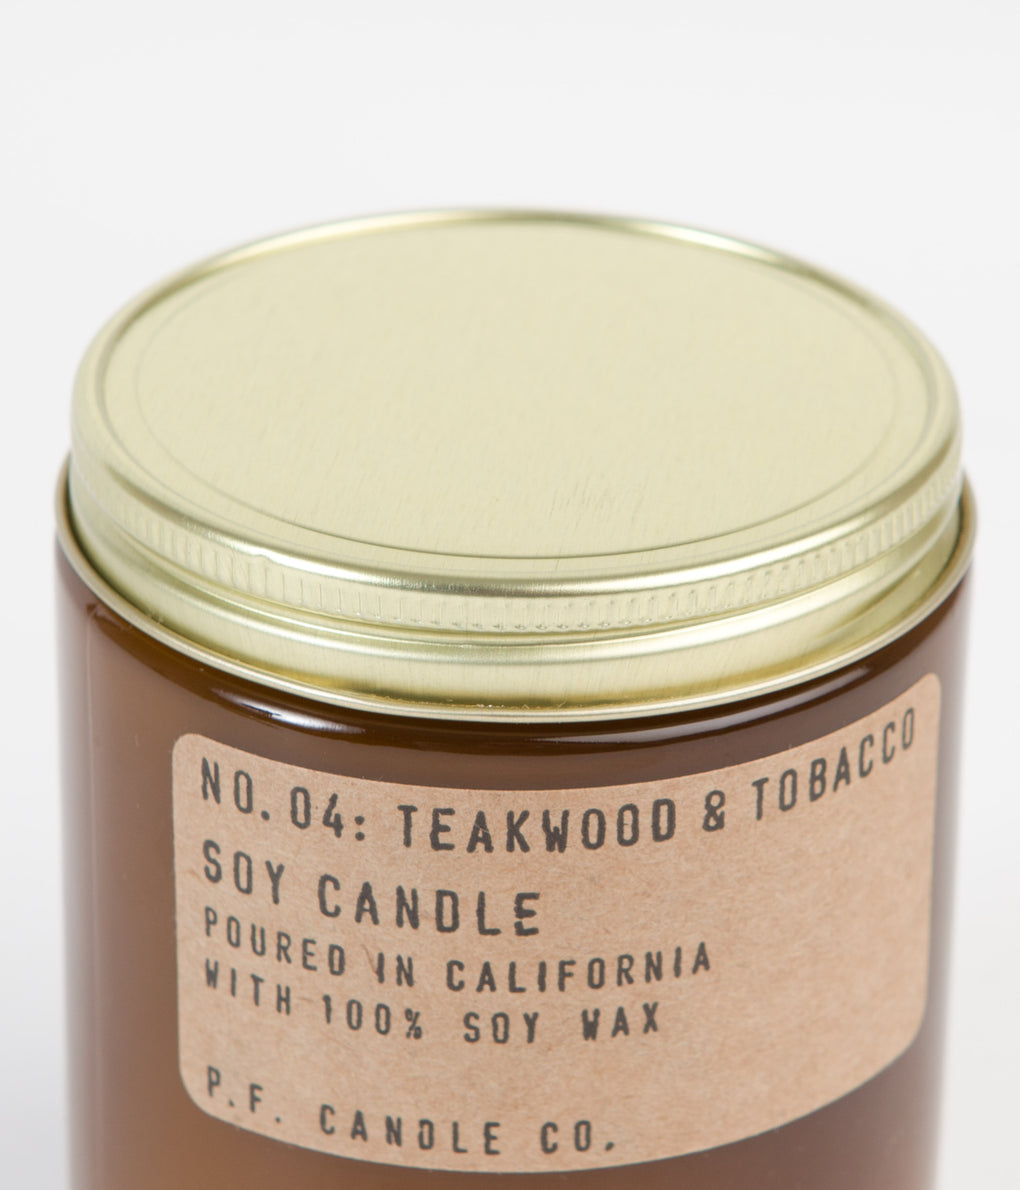 P.F. Candle Co. No. 04 Teakwood & Tobacco Soy Candle - 7.2oz